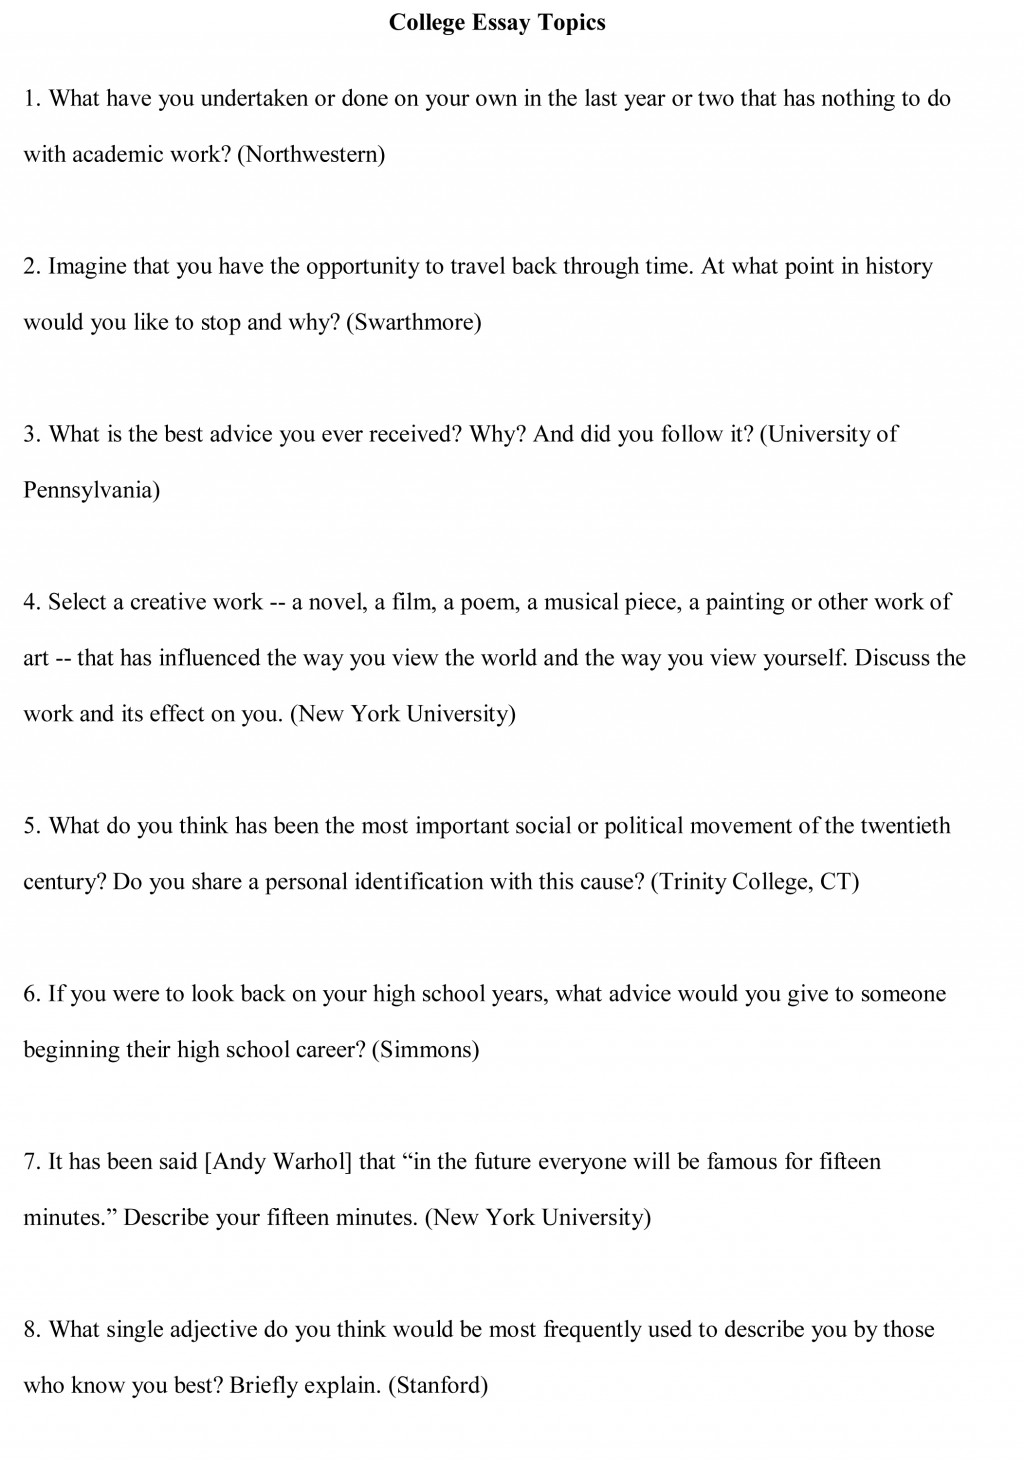 014 Essay Topics College Free Sample1 Archaicawful For 8th Grade List Class 10 Questions Macbeth Act 2 Large